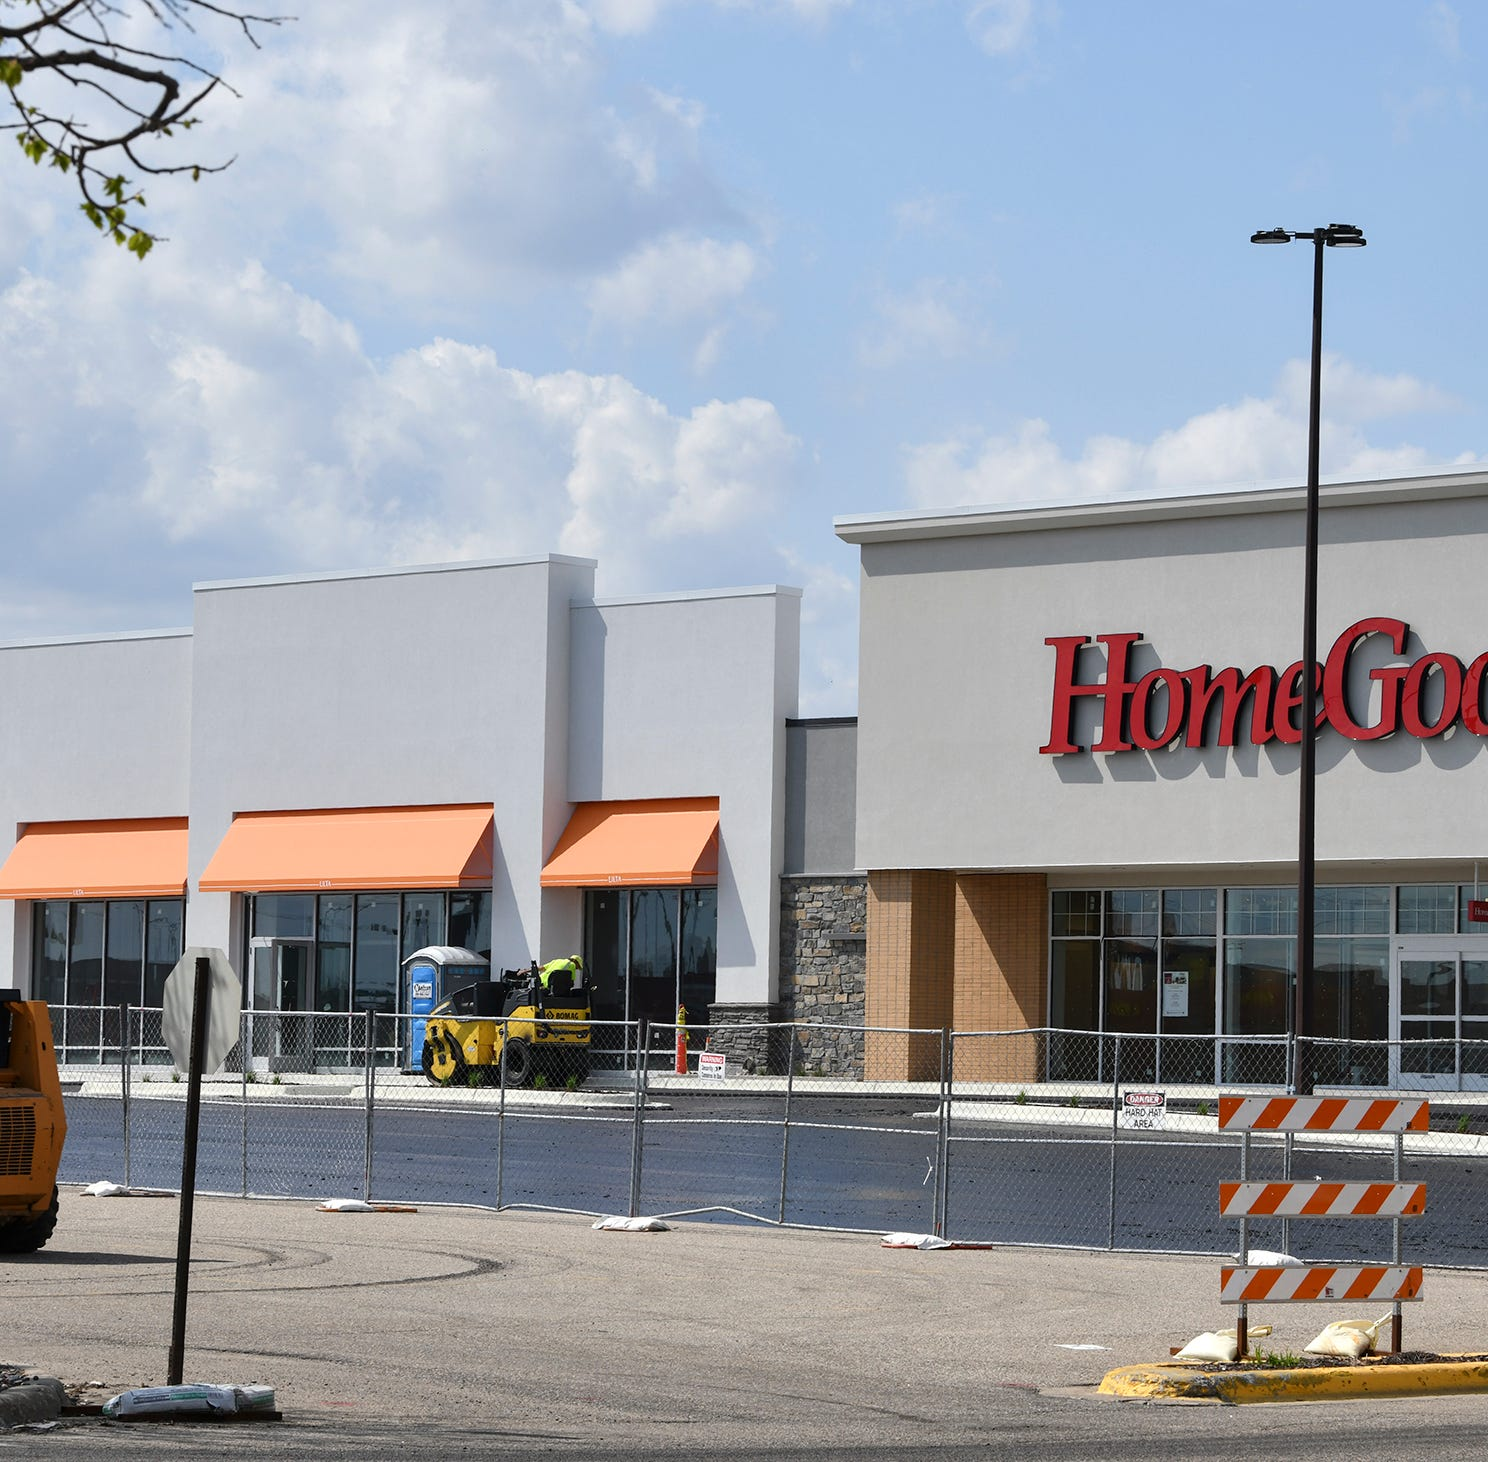 Ulta Beauty joins HomeGoods, DSW at Crossroads Center anchor store redevelopment